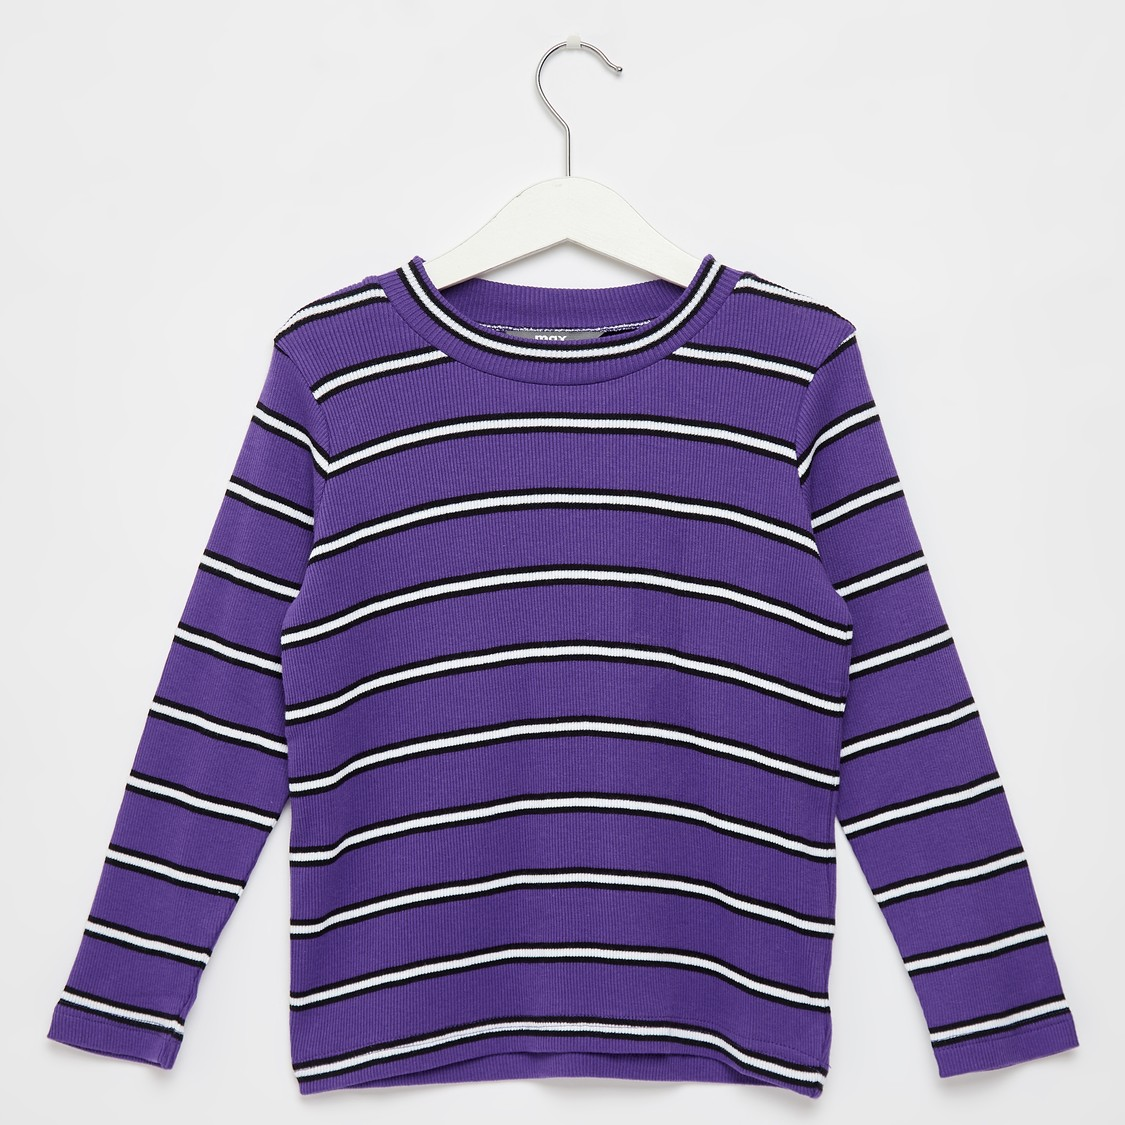 Striped Crew Neck T-shirt with Long Sleeves